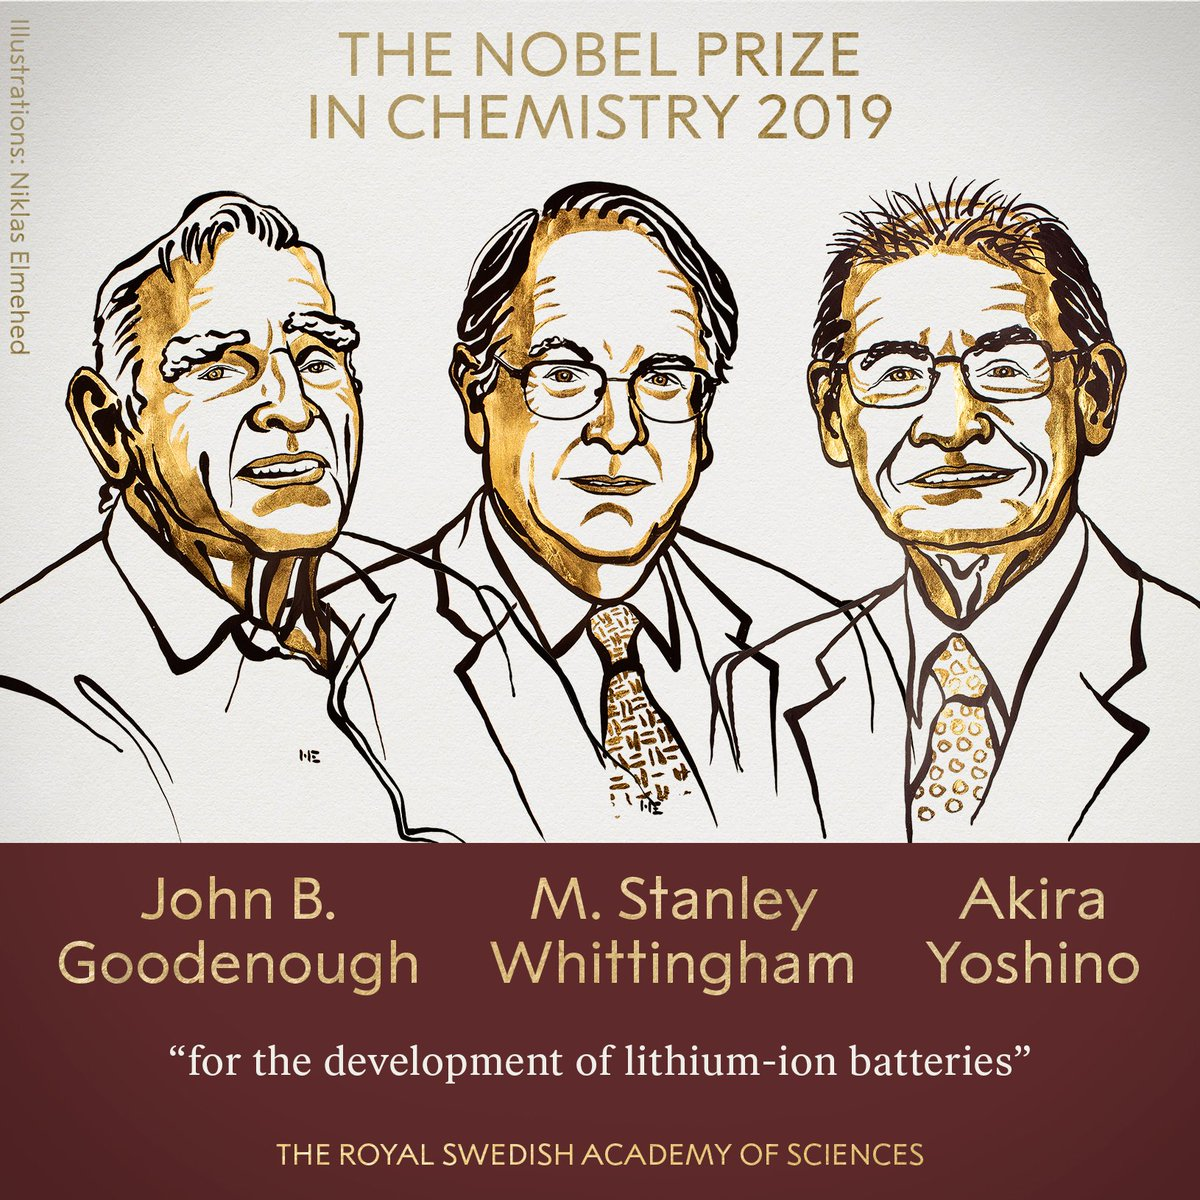 The Nobel Prize in Chemistry 2019 rewards the development of the lithium-ion battery